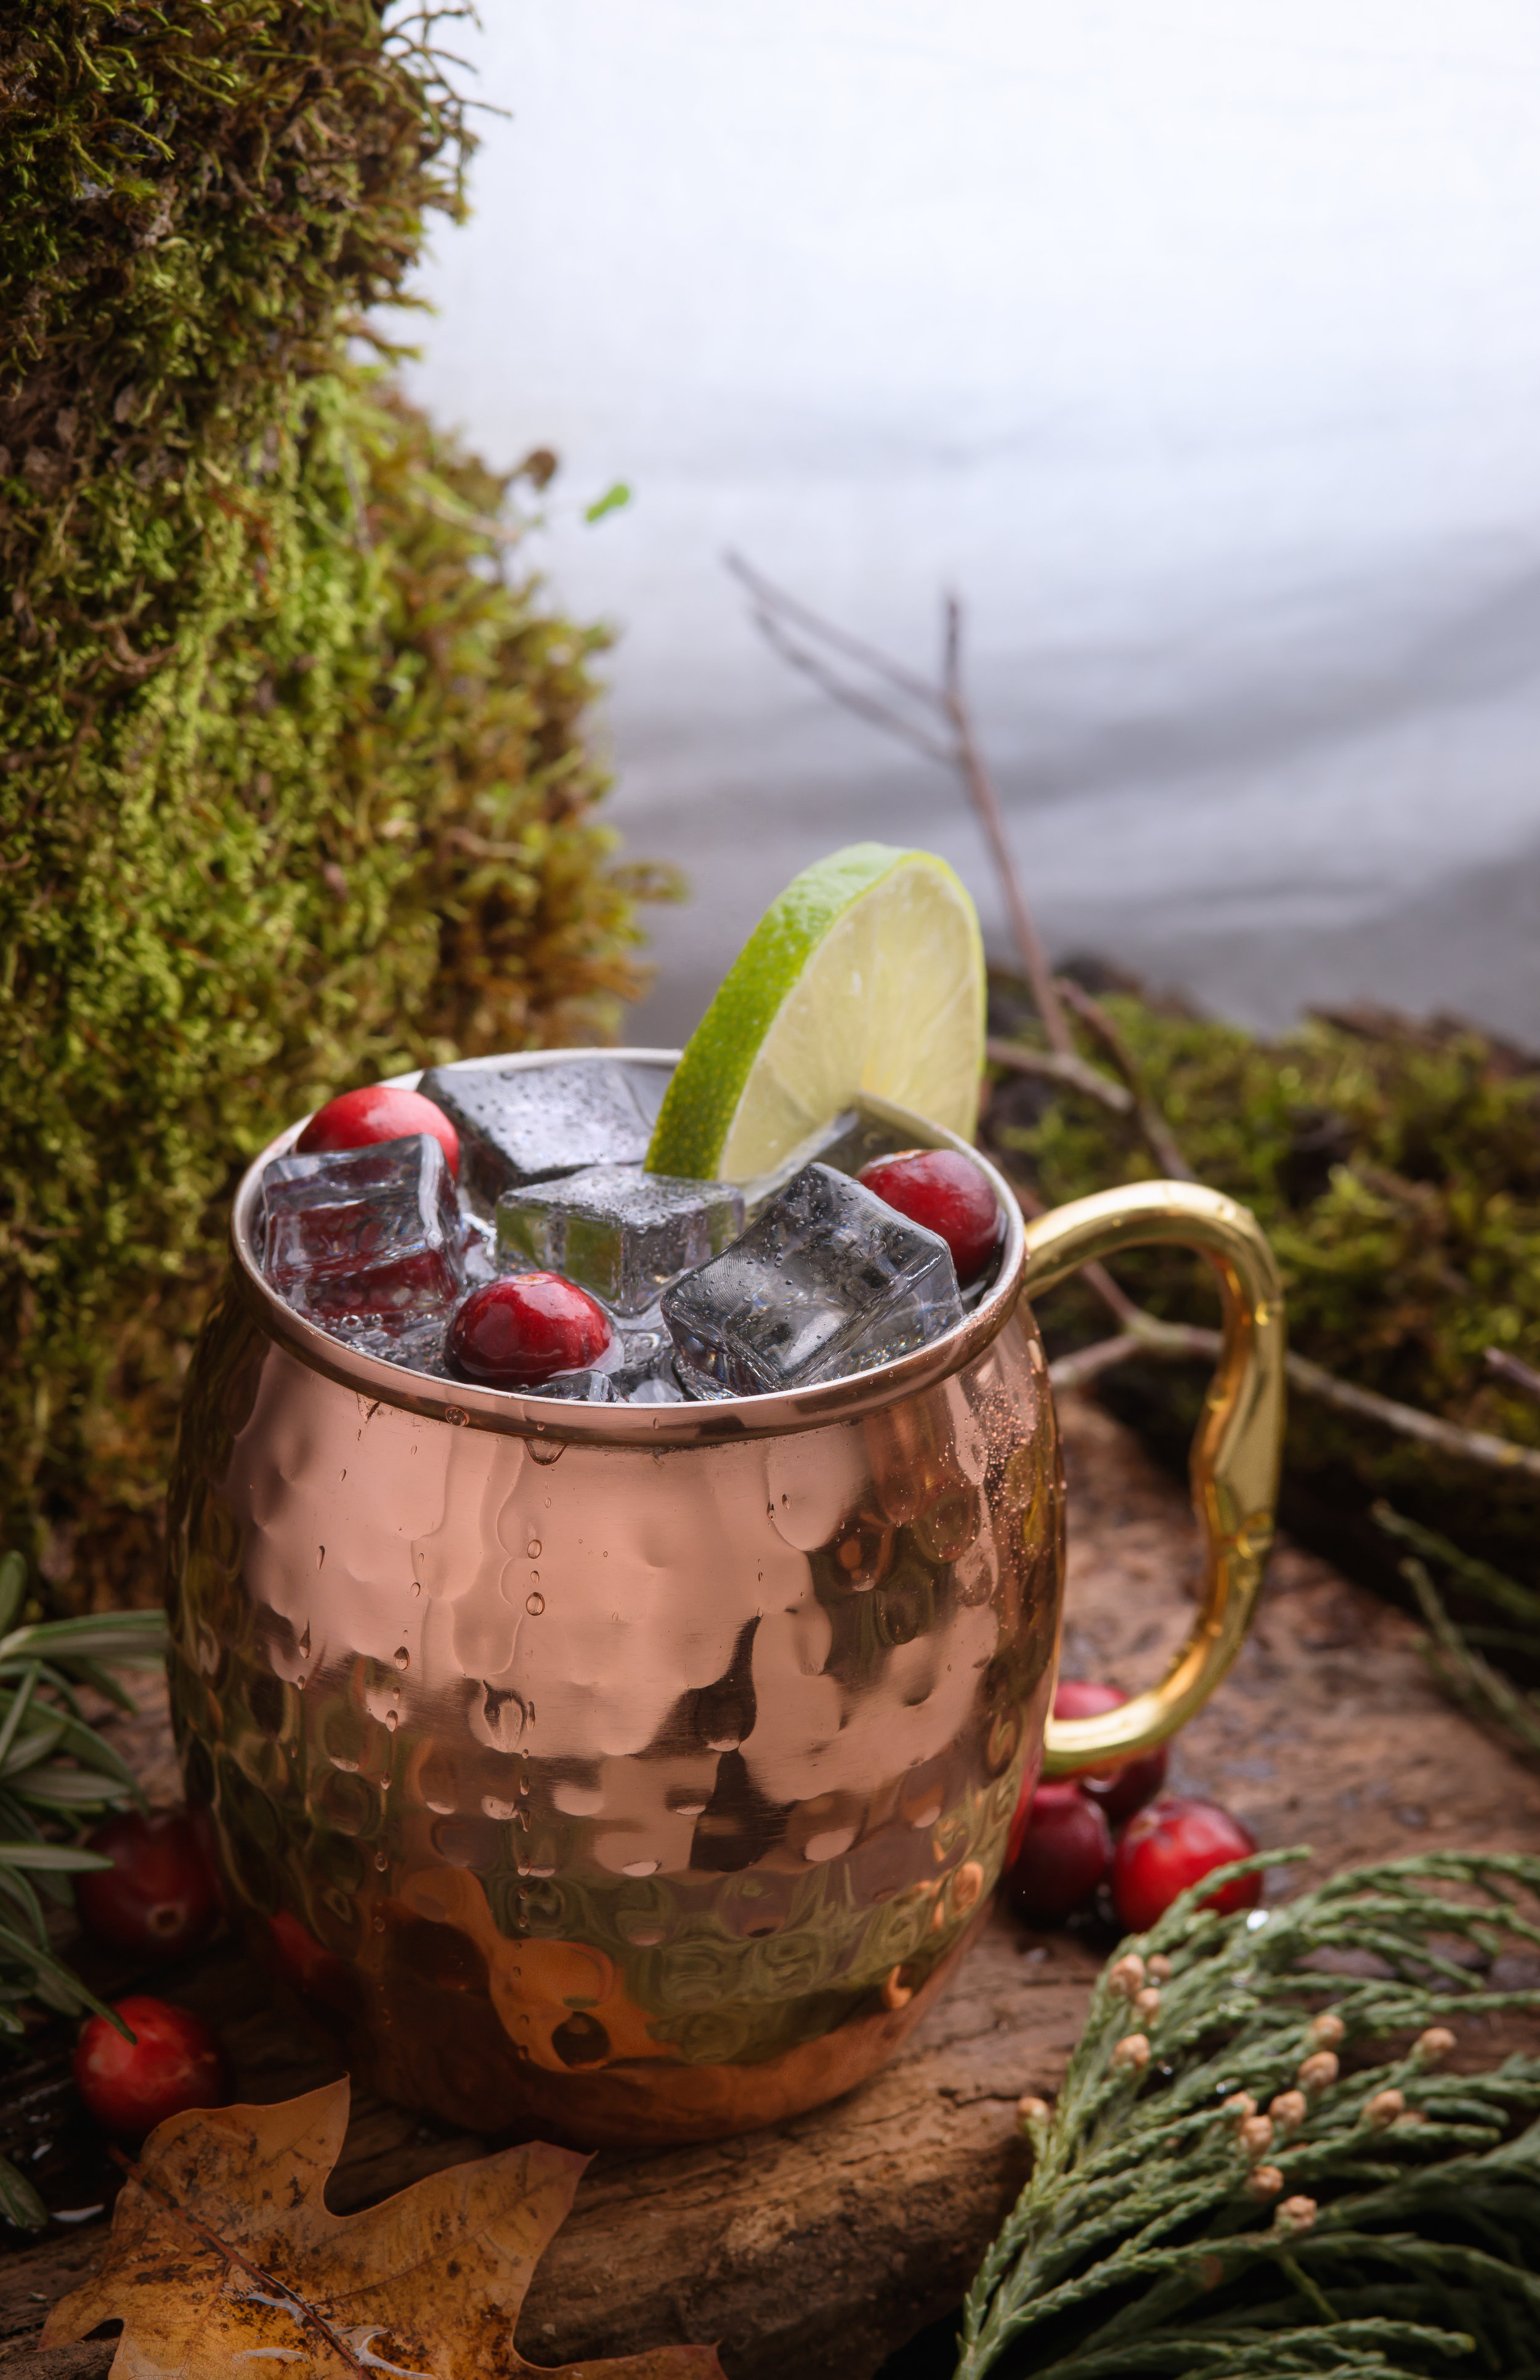 20190101LIRFinals-7-20190101Vodka_Mule_Coast_Range-29-01229-Edit.jpg